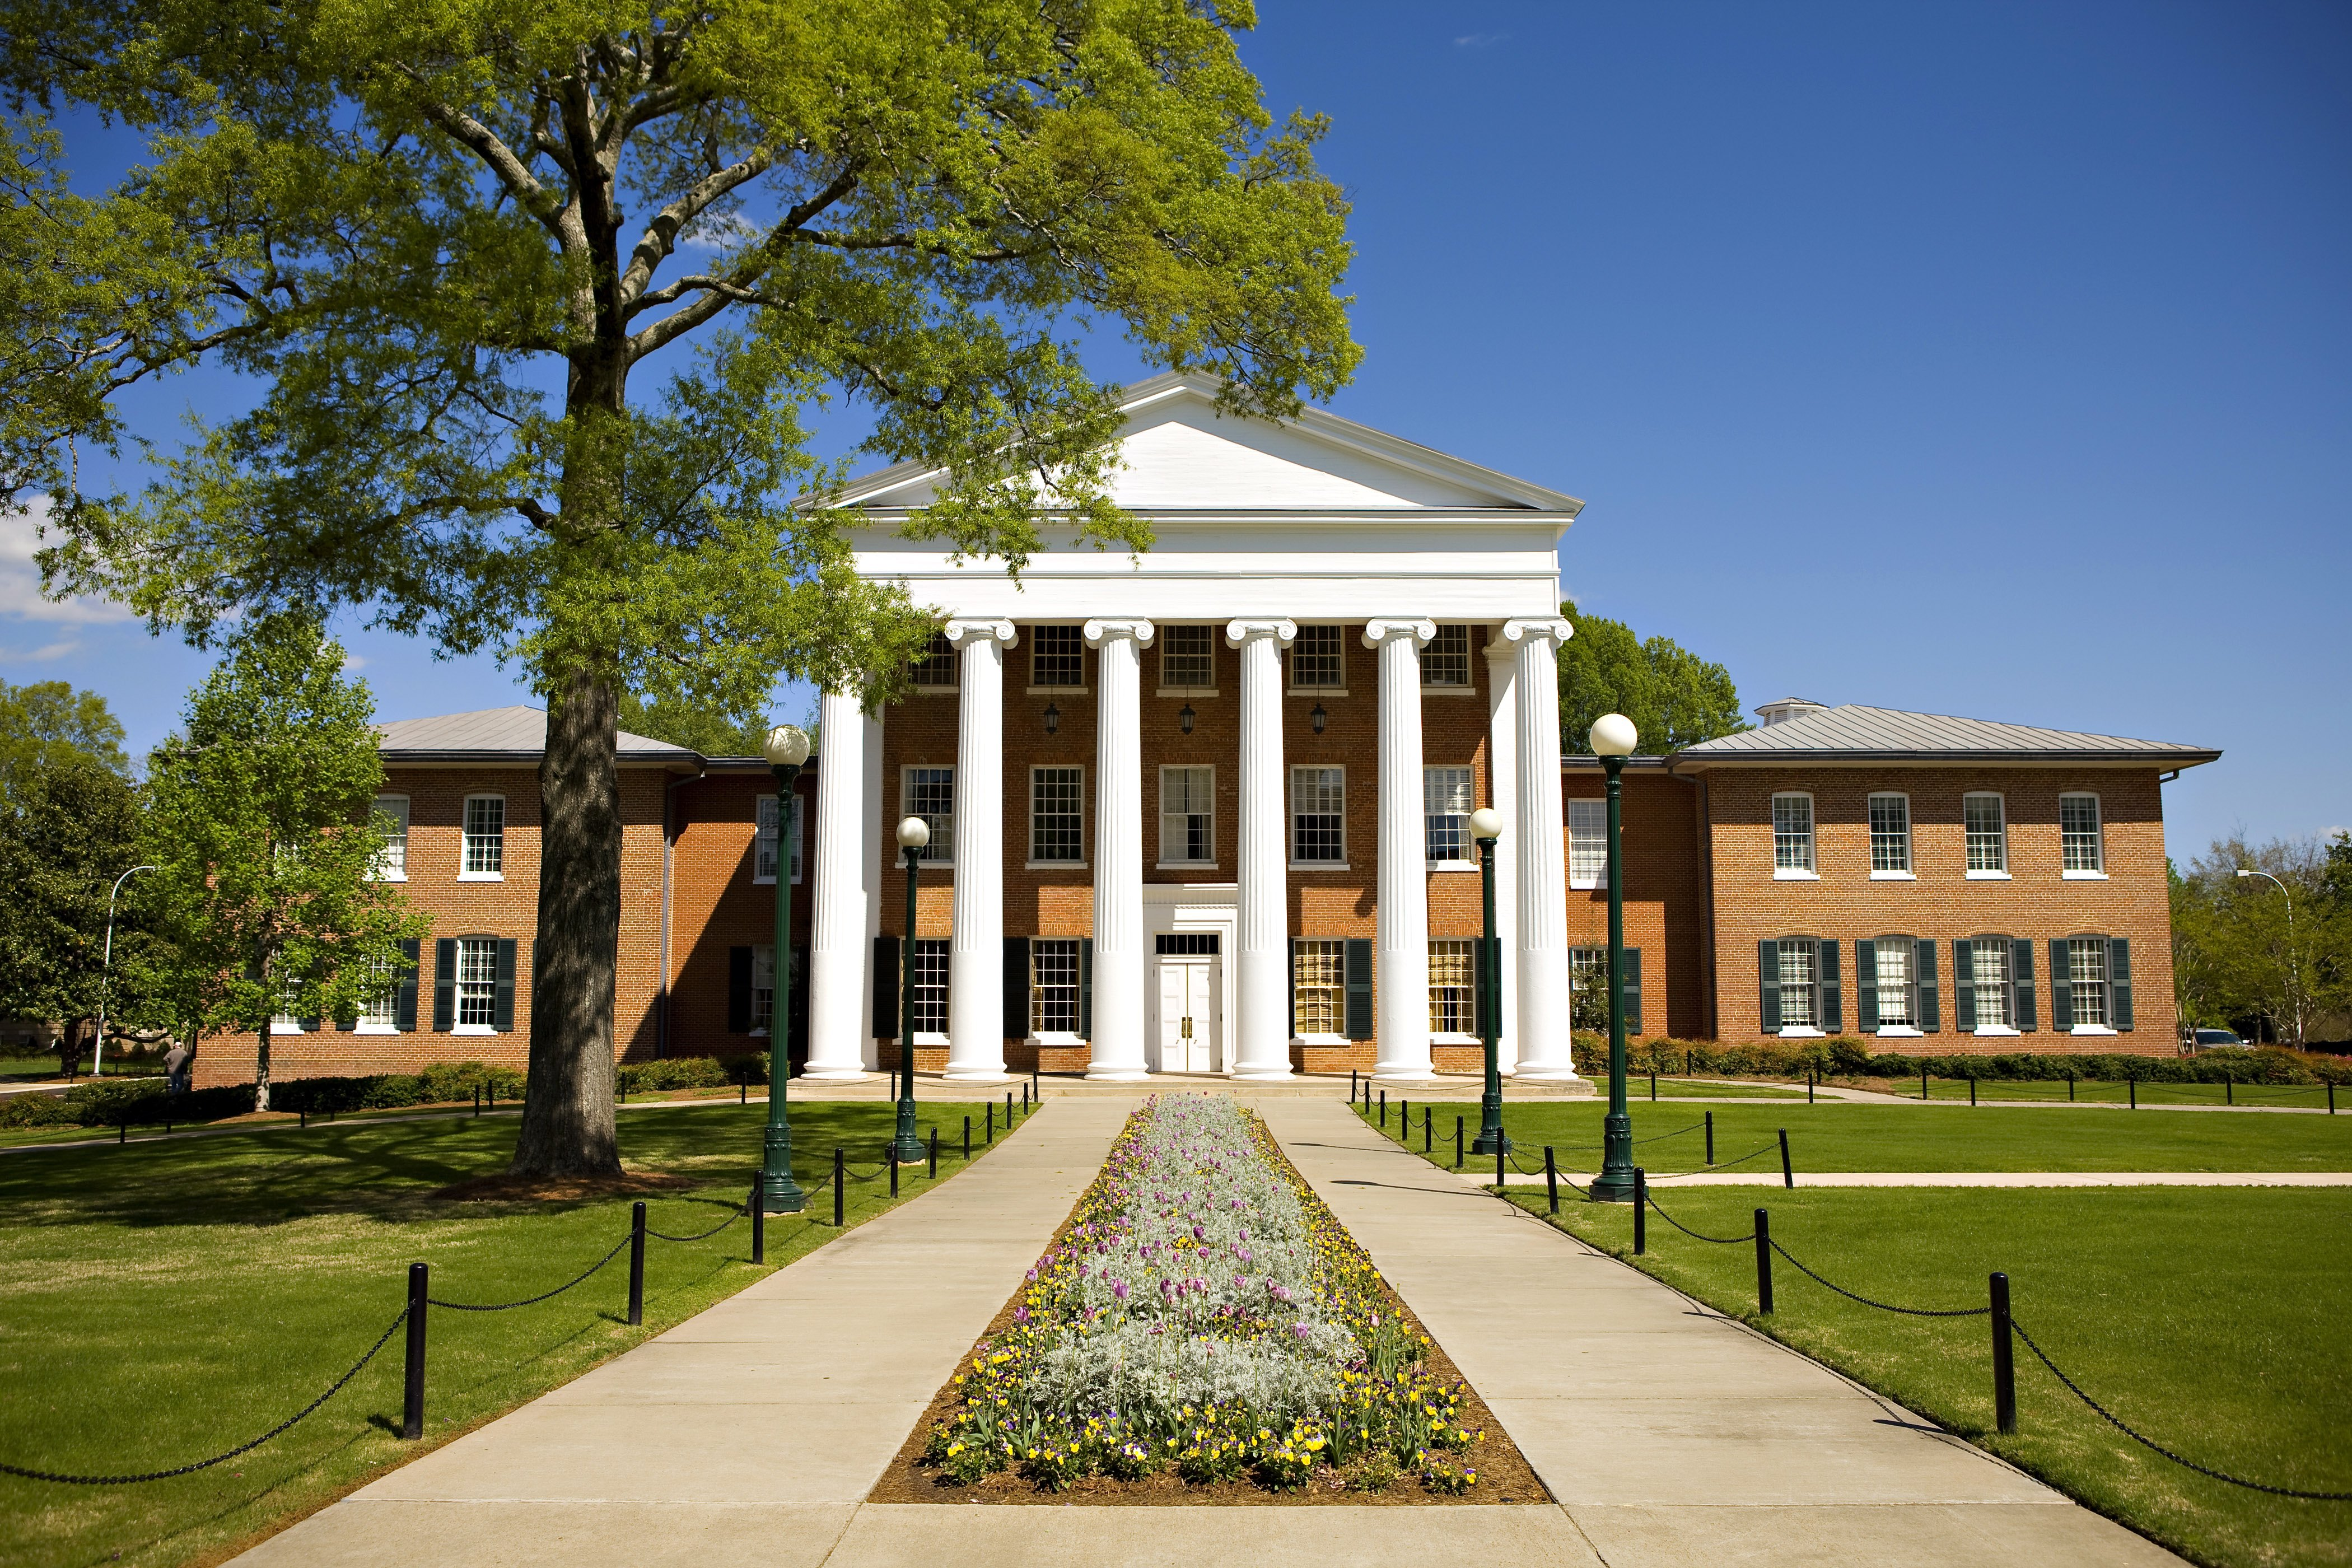 The Lyceum, the oldest building on the campus of the University of Mississippi